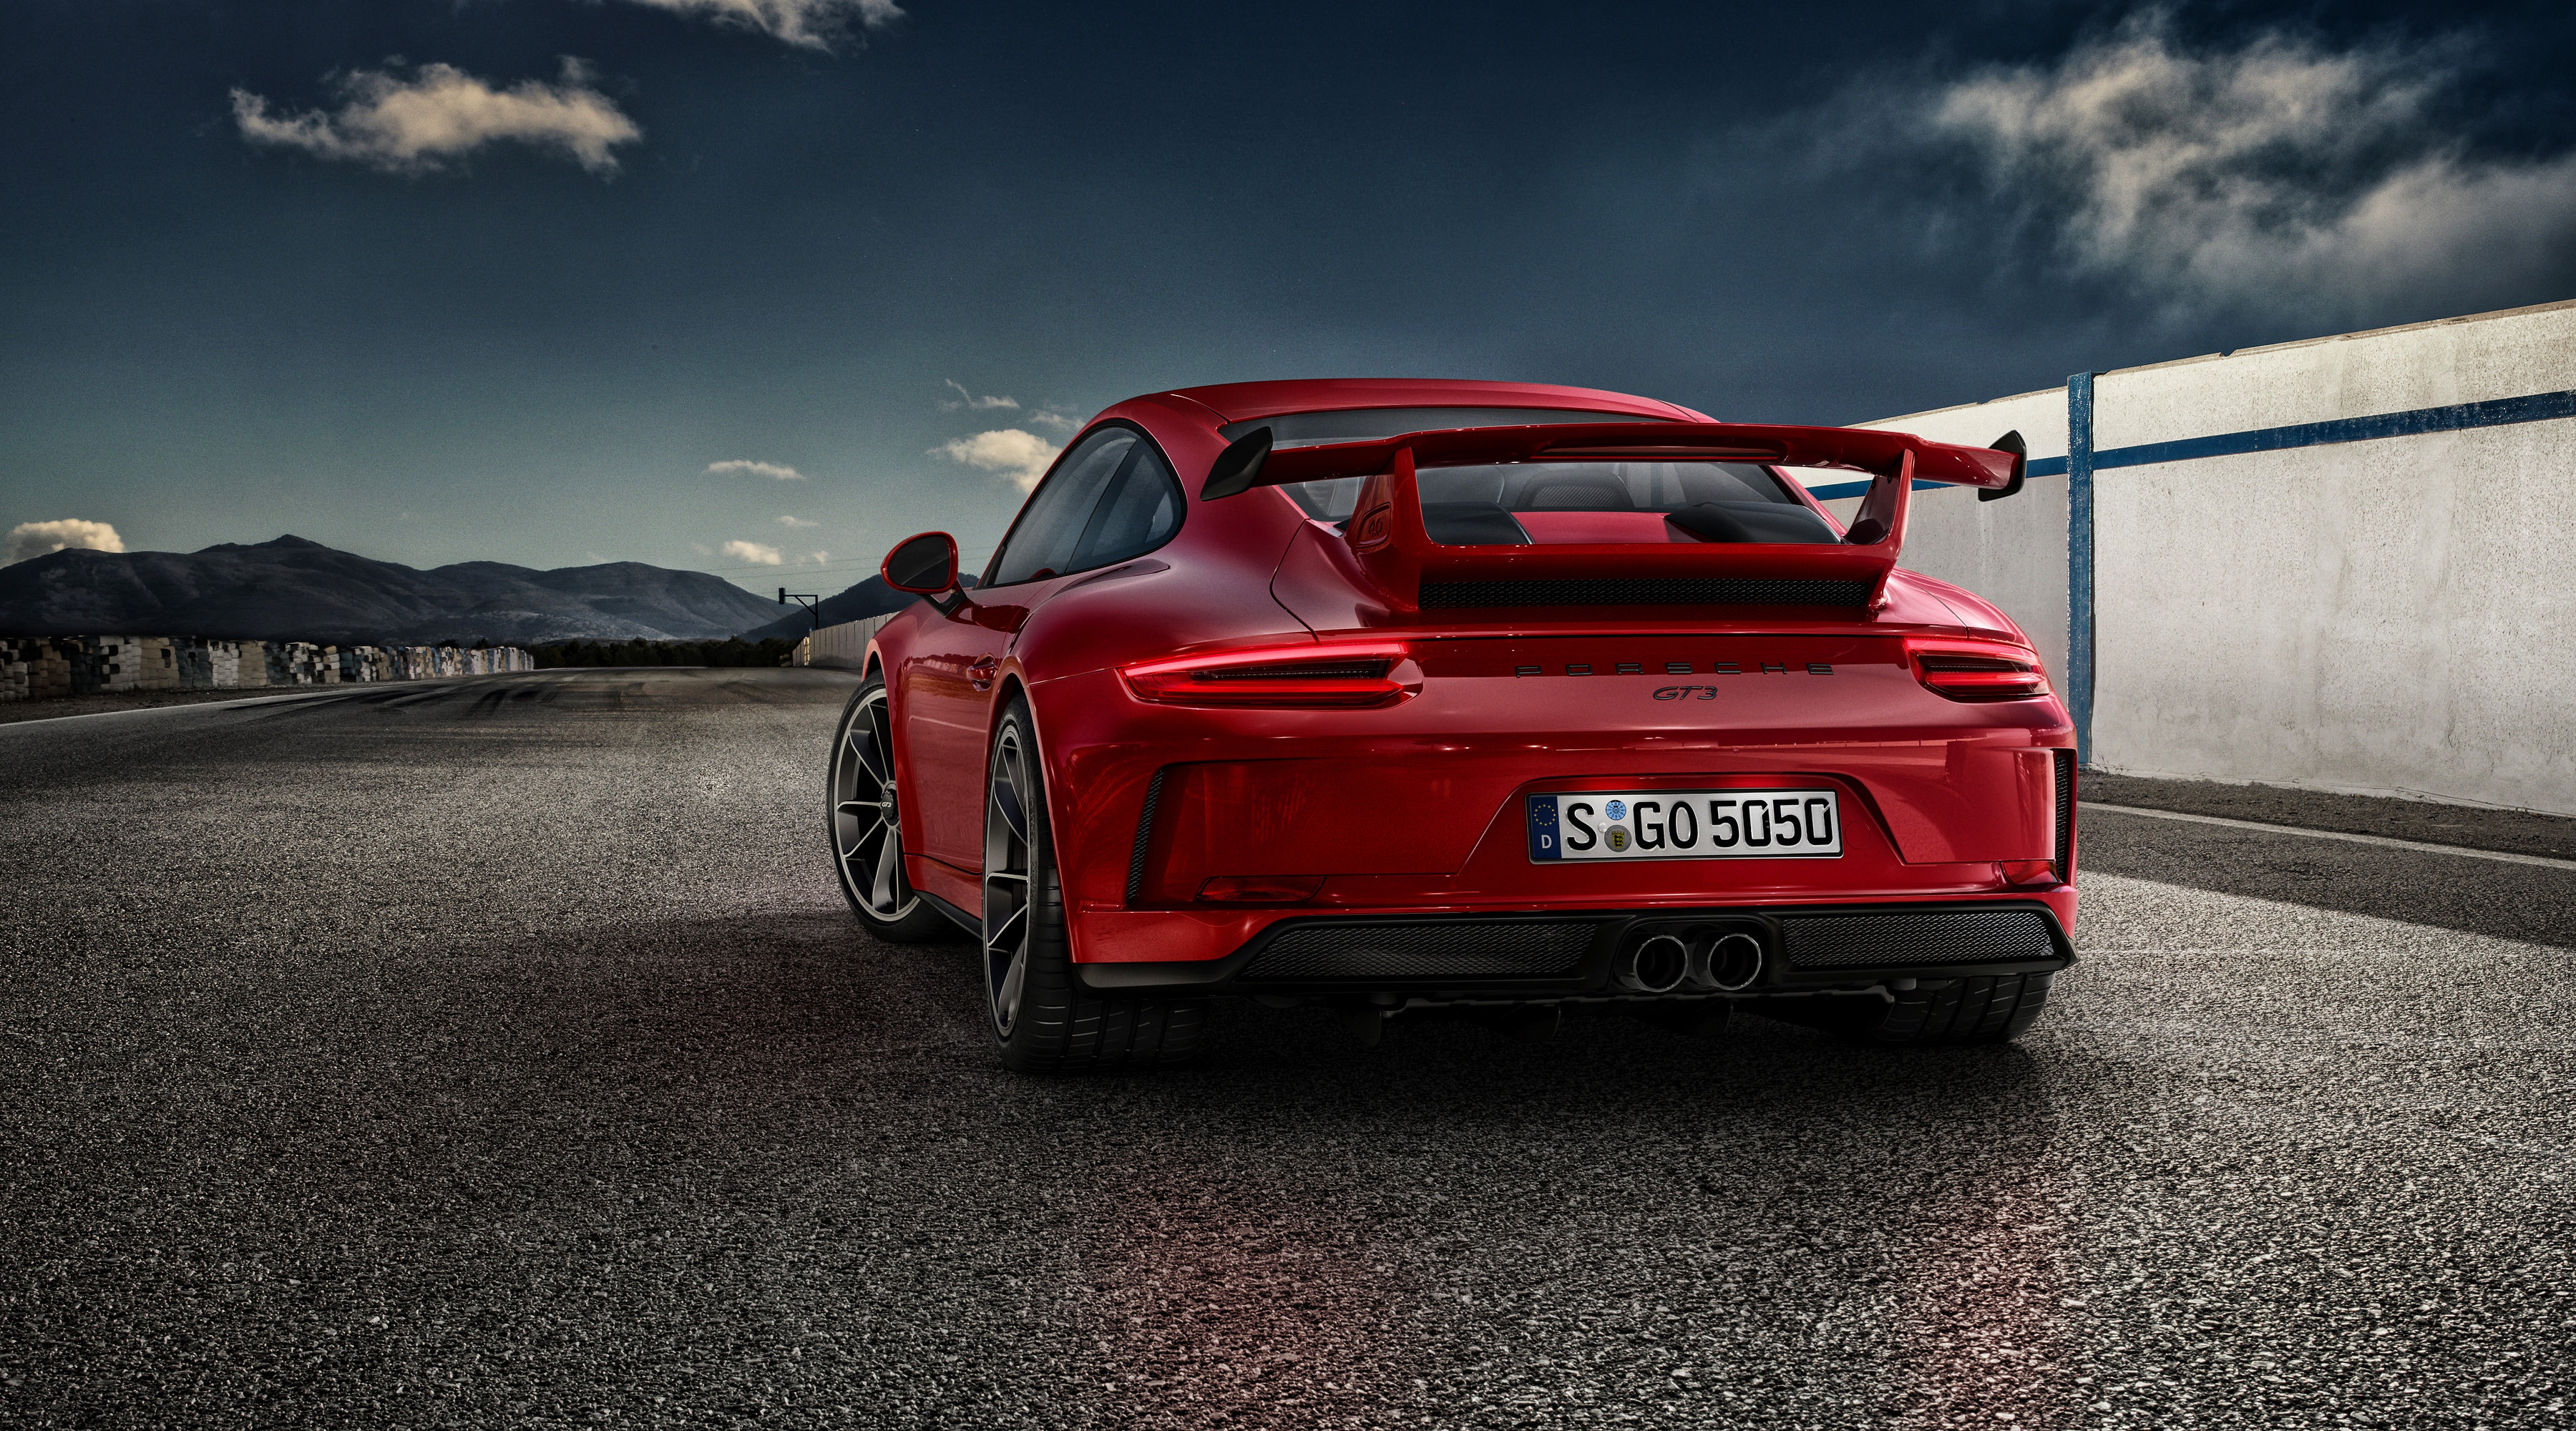 289 porsche-911-wallpapers, porsche-wallpapers, cars-wallpapers, hd ...